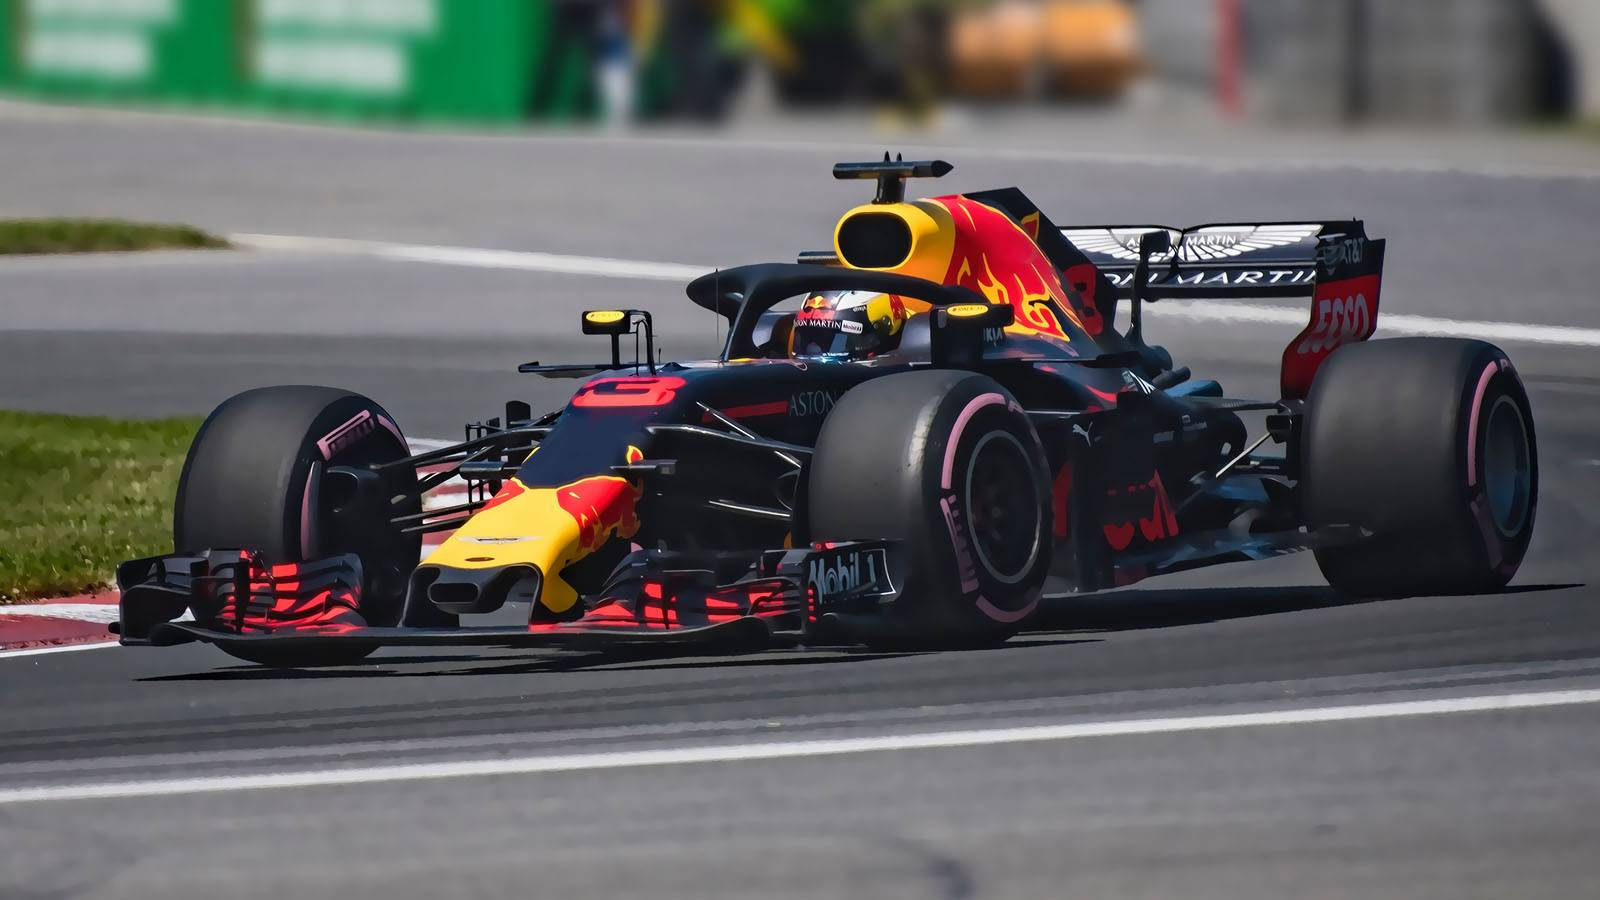 2020 Canada Formula 1 Grand Prix - Friday